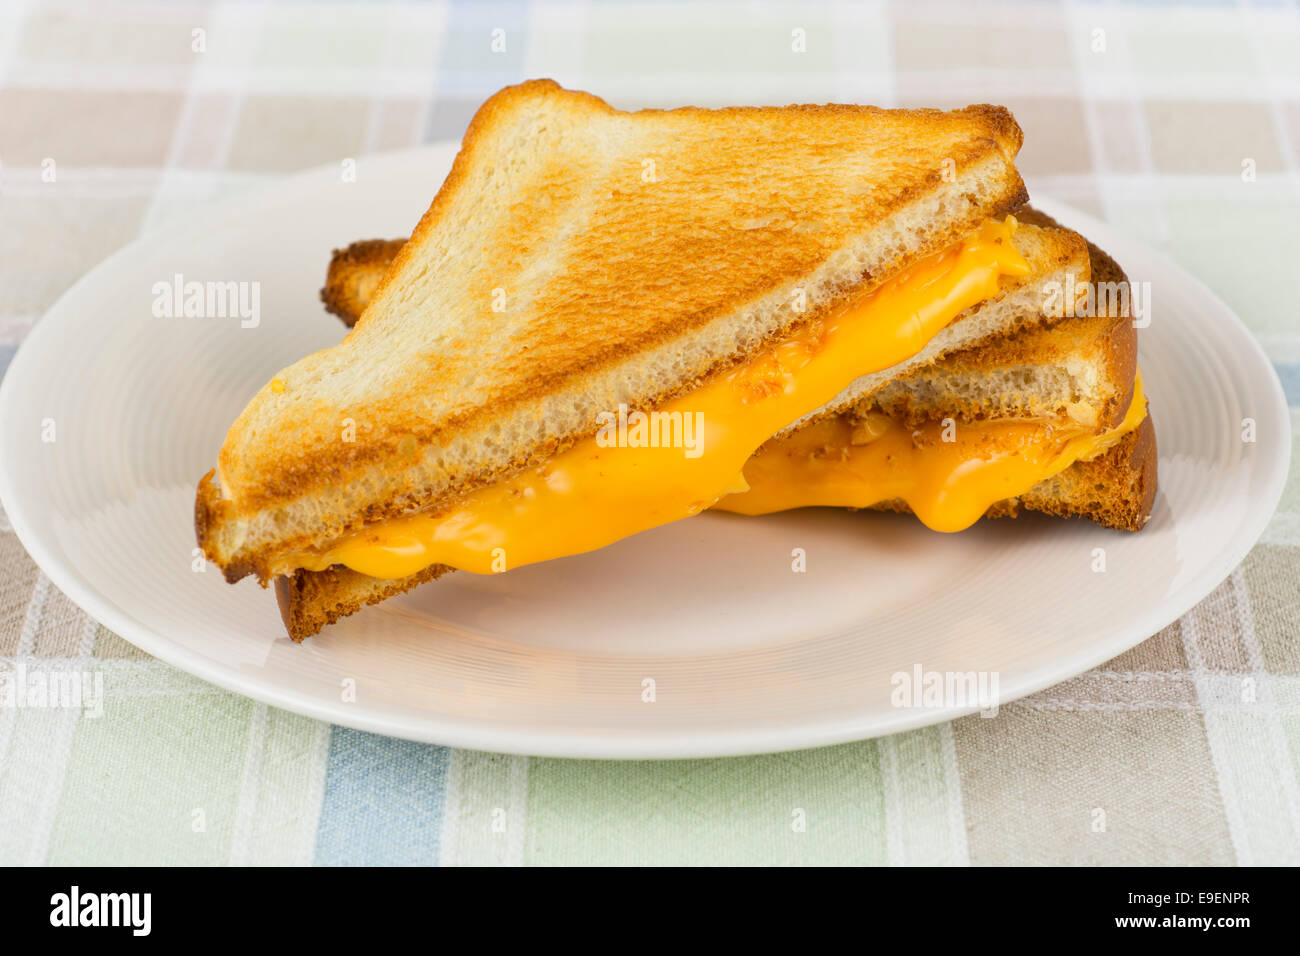 Grilled Cheese Sandwich, Hot Melting Cheese - Stock Image